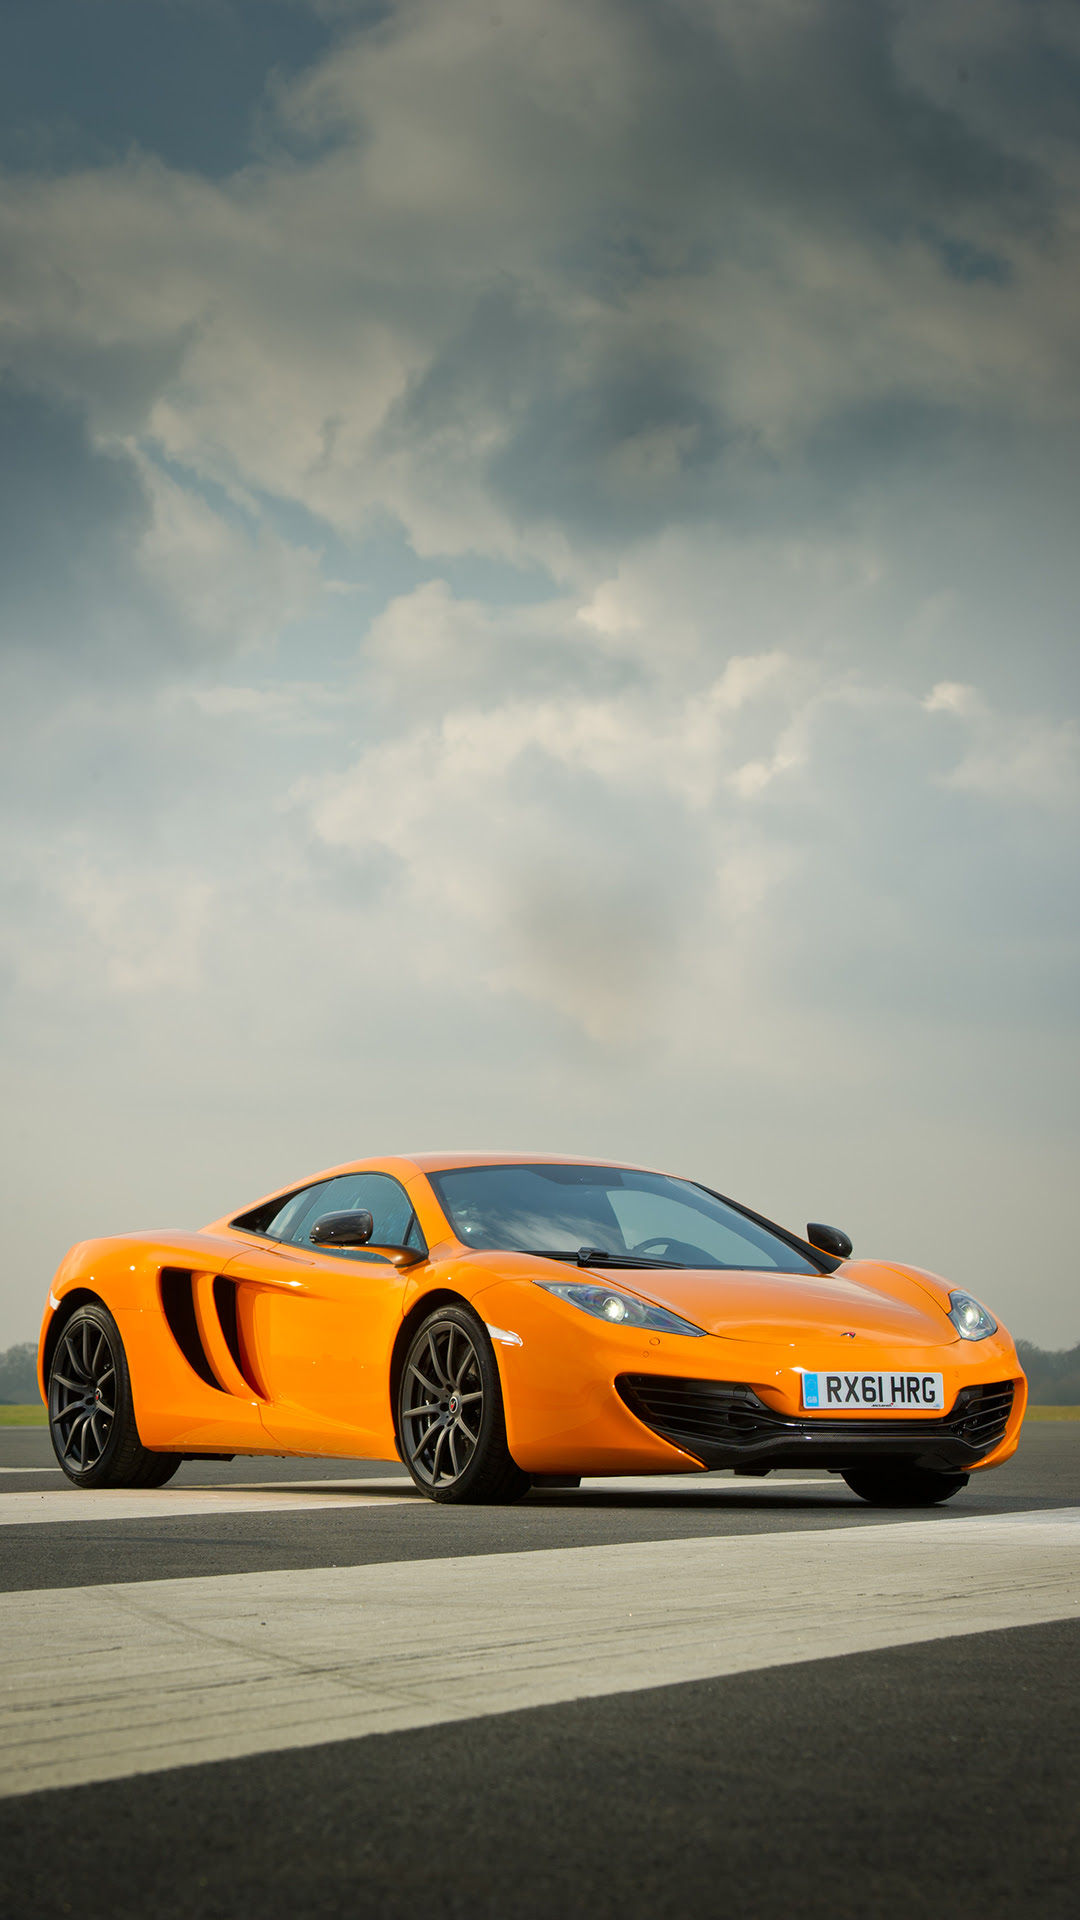 Mclaren Best Htc One Wallpapers Free And Easy To Download